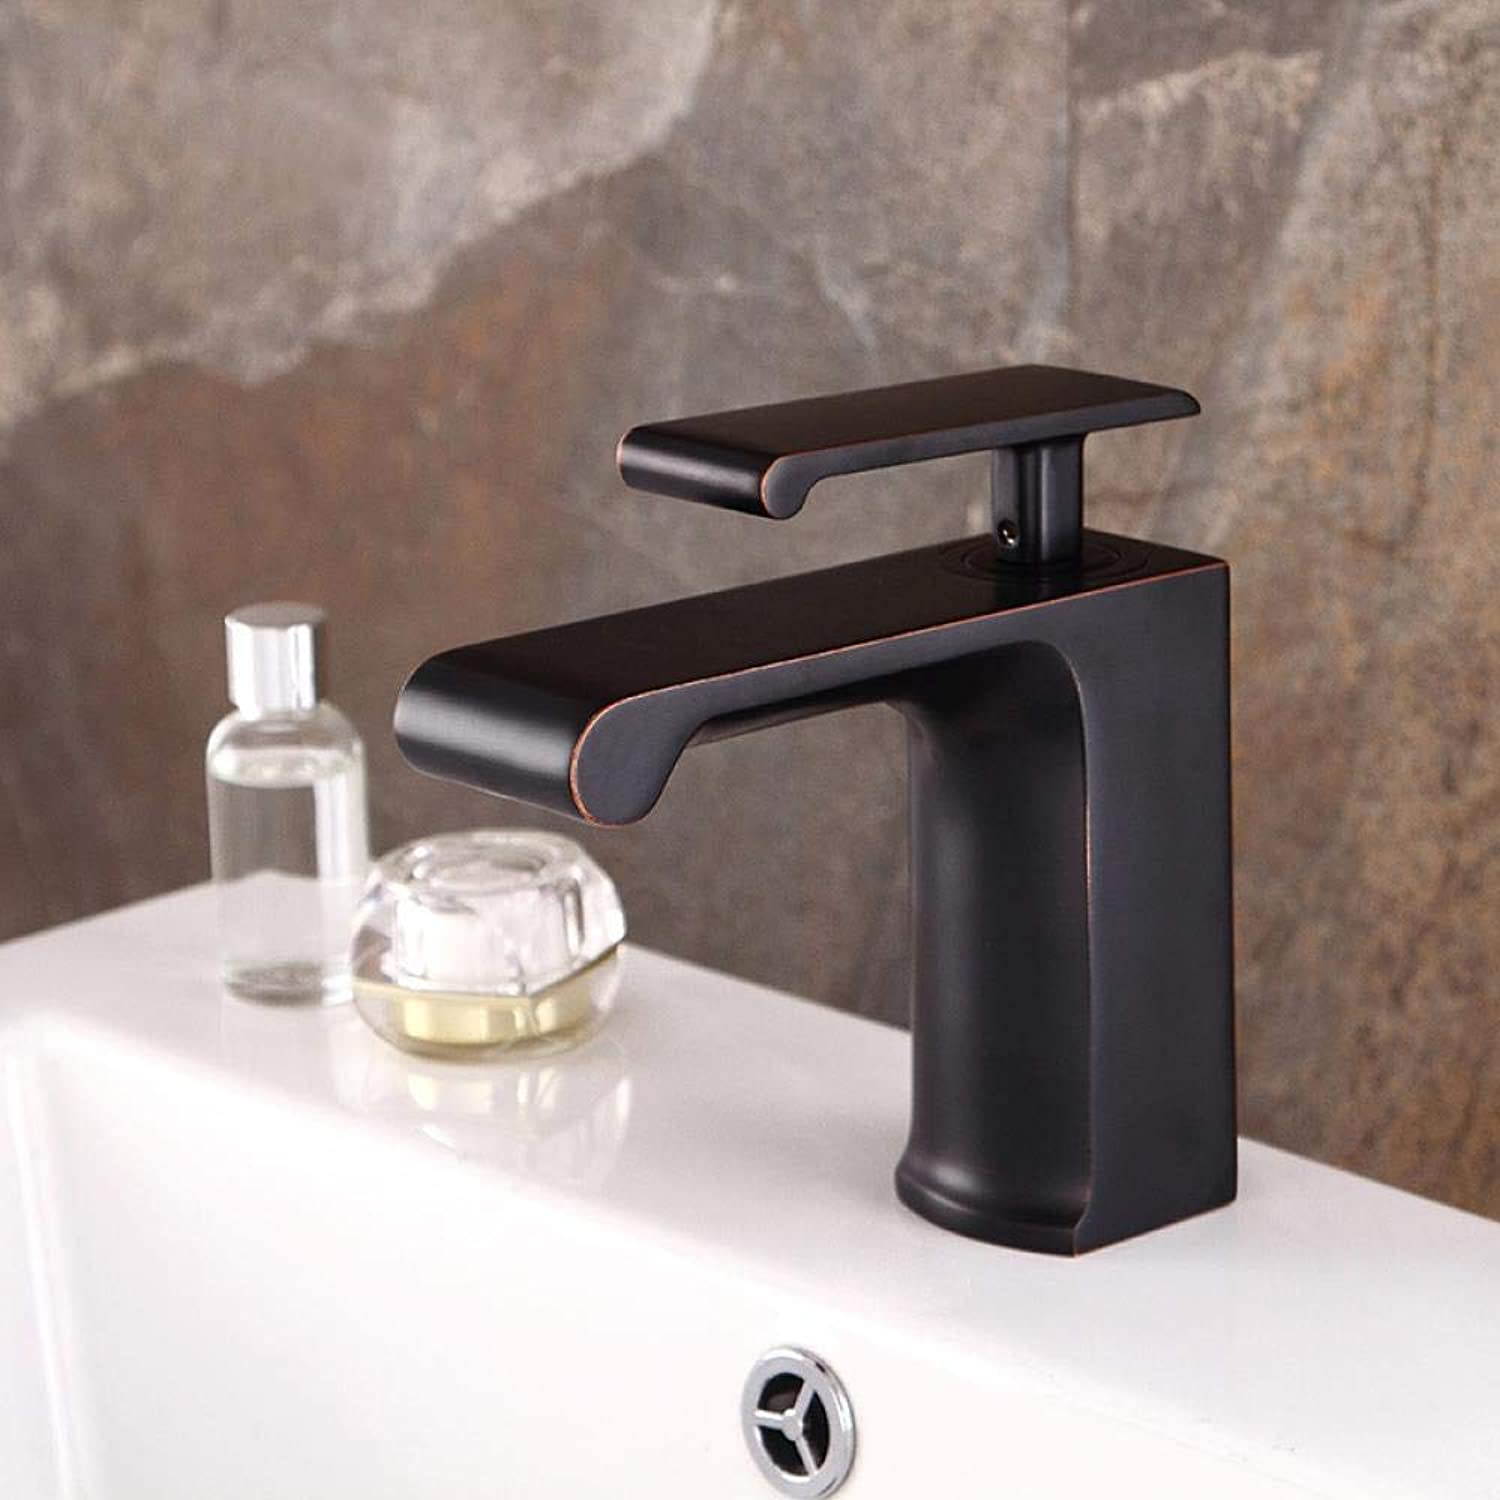 Tap Washbasin Faucet Retro Black Wrench Chrome-Plated Brass Faucet